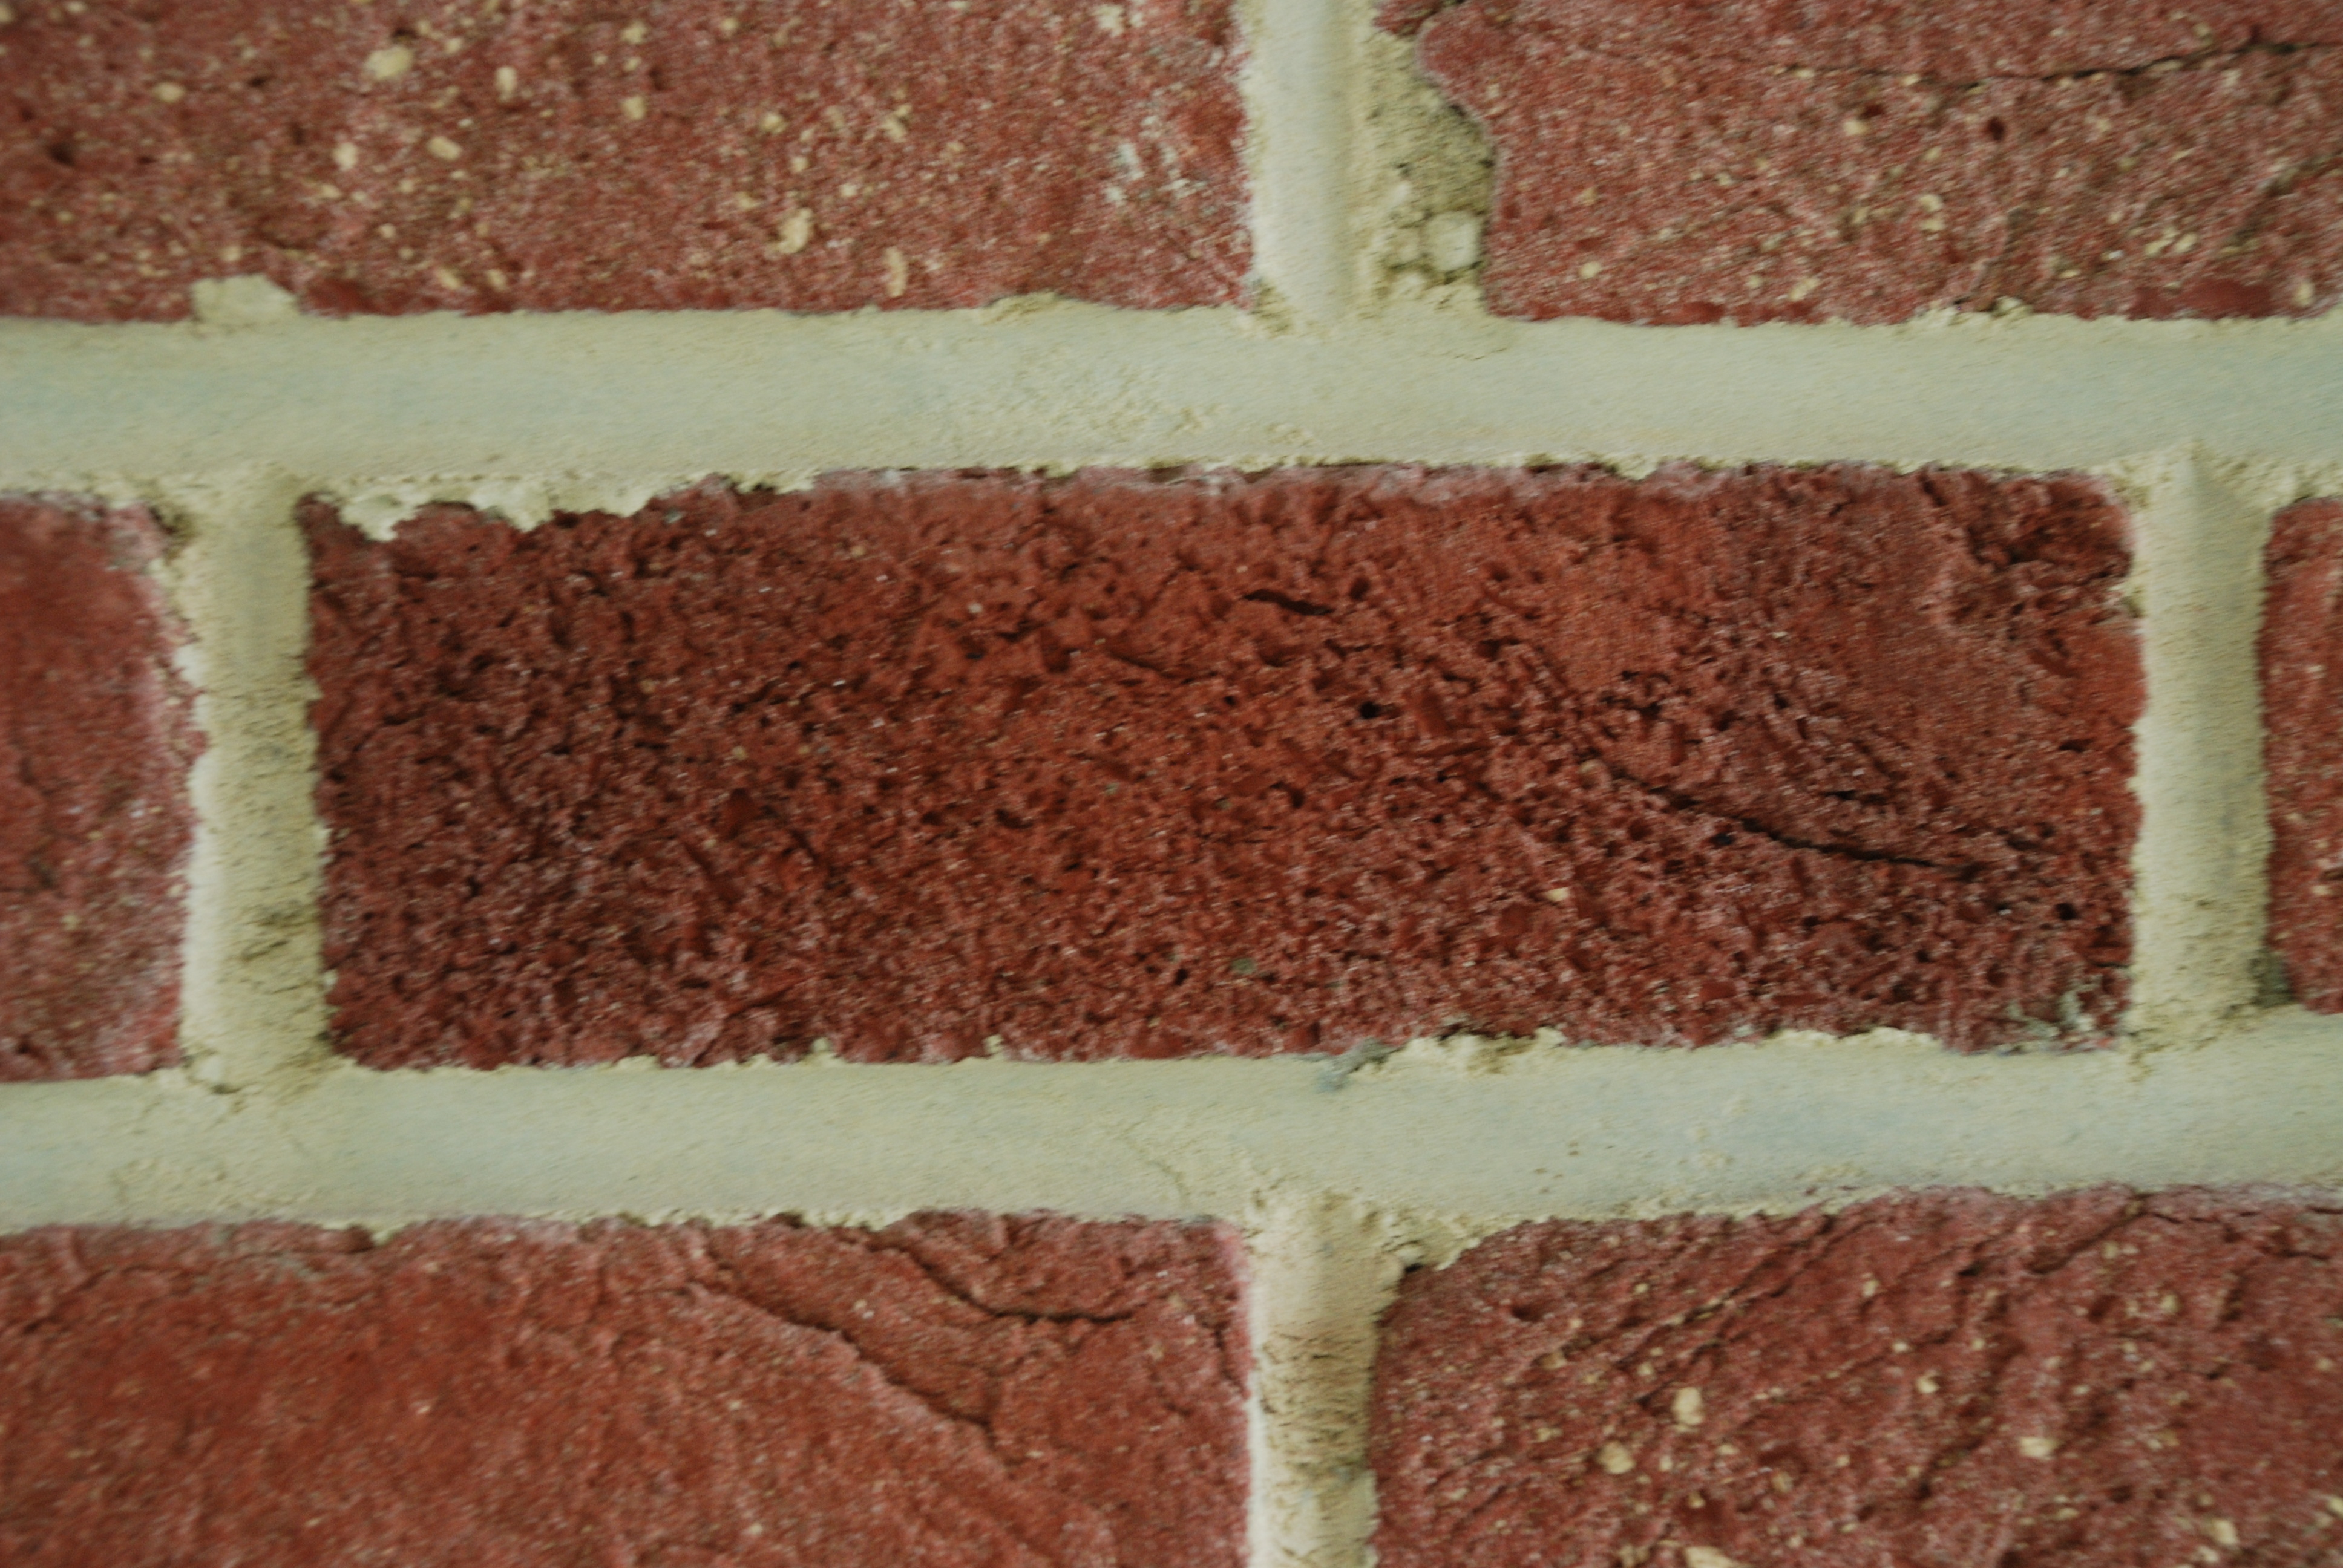 How To Paint A Wall To Look Like Bricks